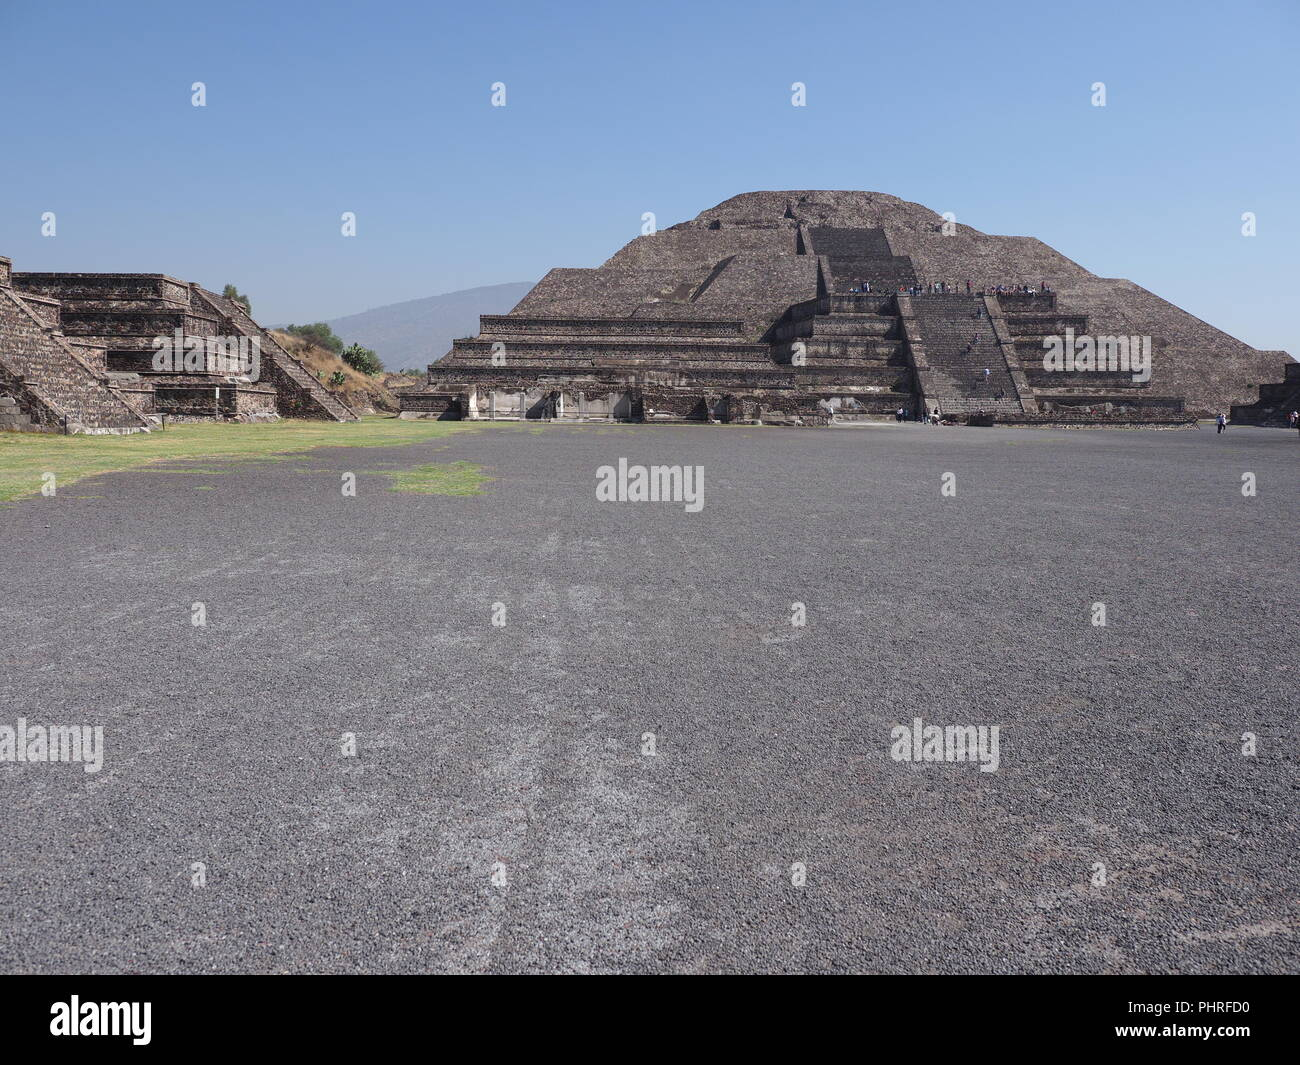 Monumental pyramid of the Moon at Teotihuacan ruins seen from Avenue of the Dead near Mexico city landscape - Stock Image